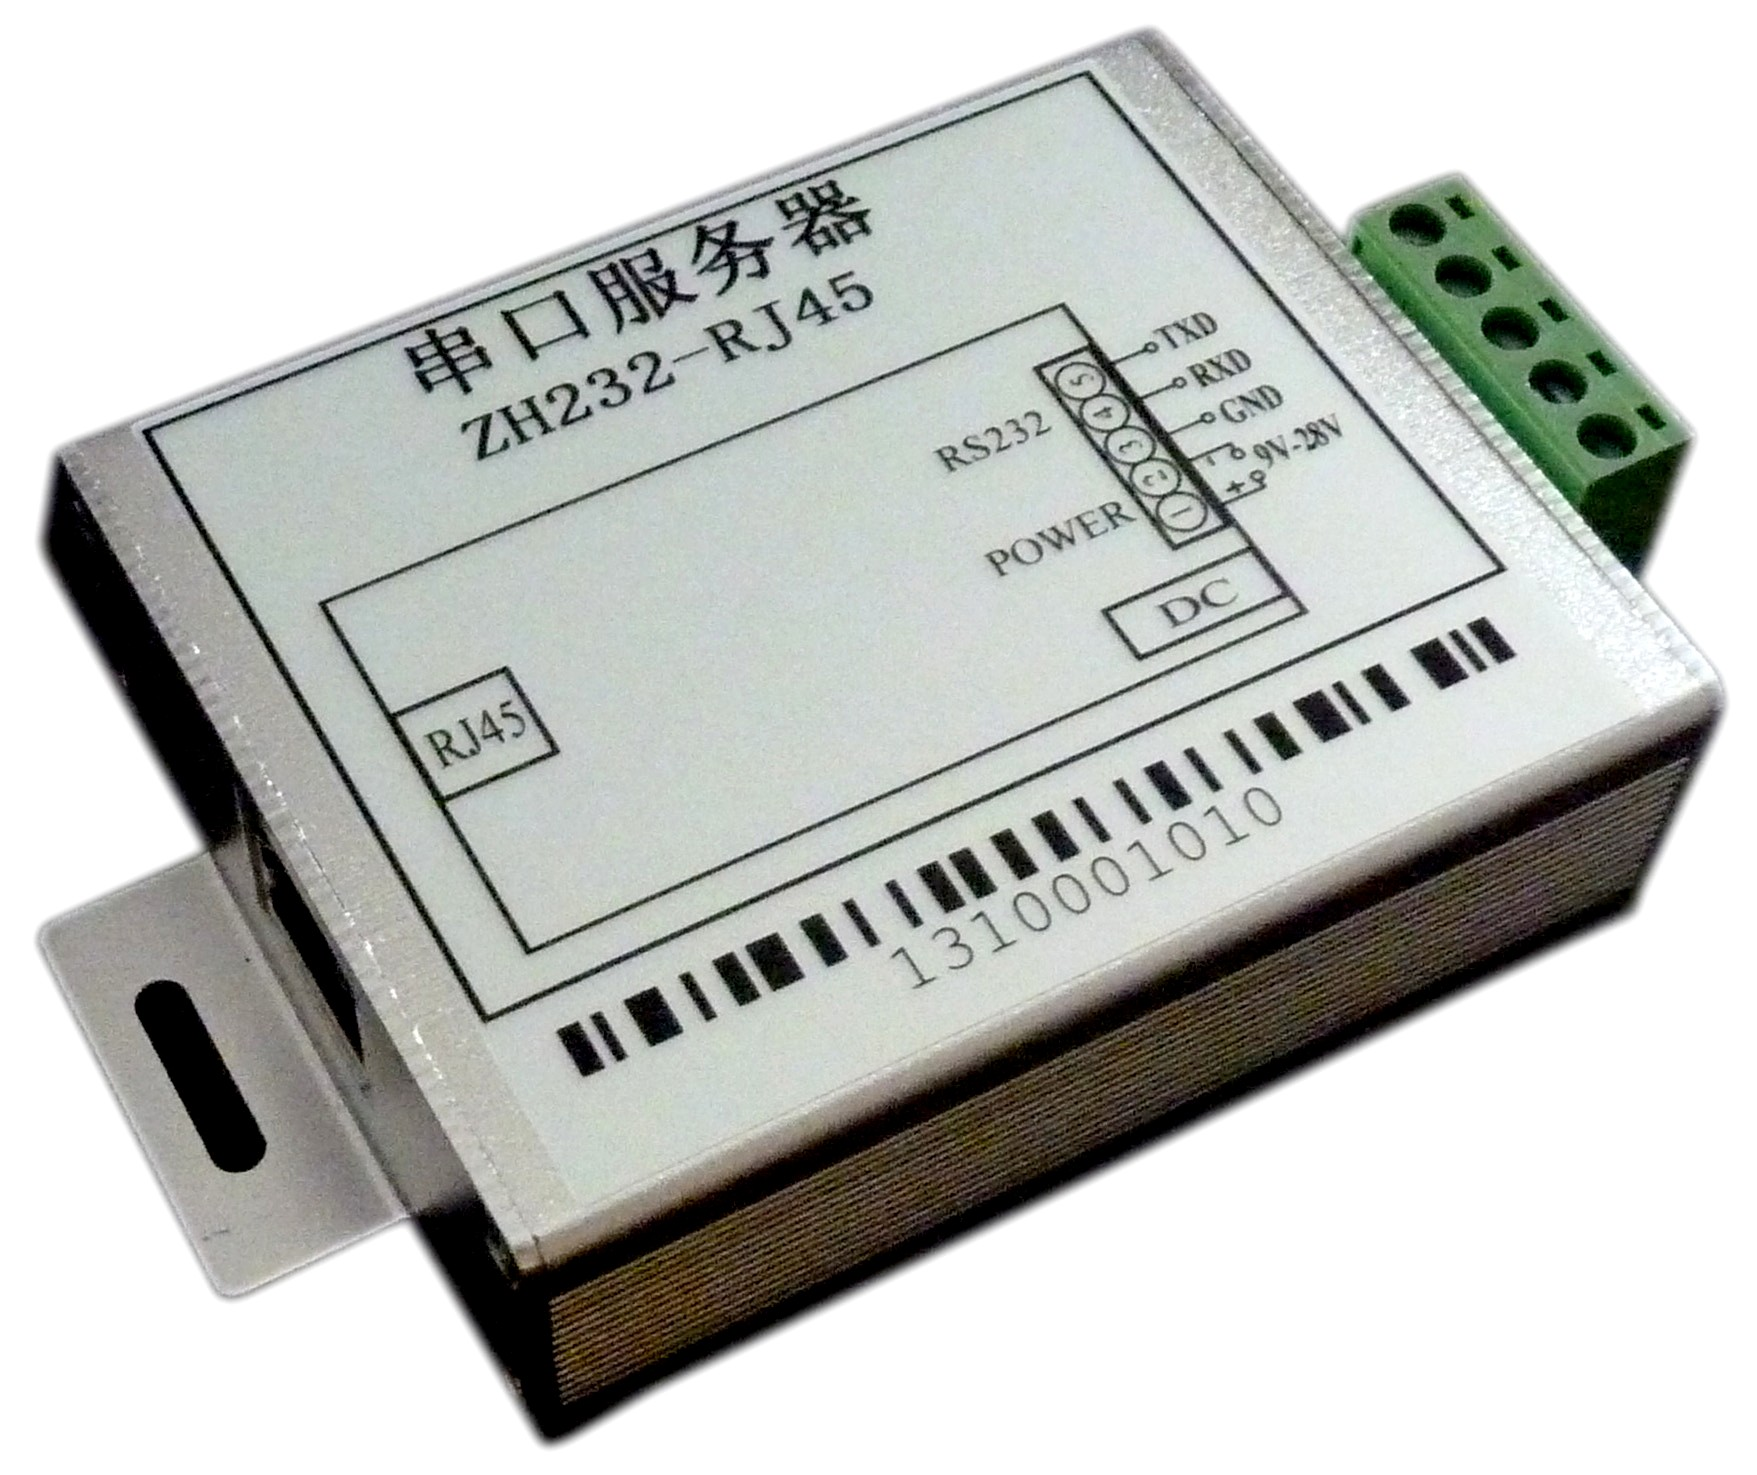 Serial Port Server Virtual Serial Port Ethernet Module ZH232-RJ45 RS232/RS485 Switch Network rs232 serial port to ethernet server two way transparent transmission rs232 serial server